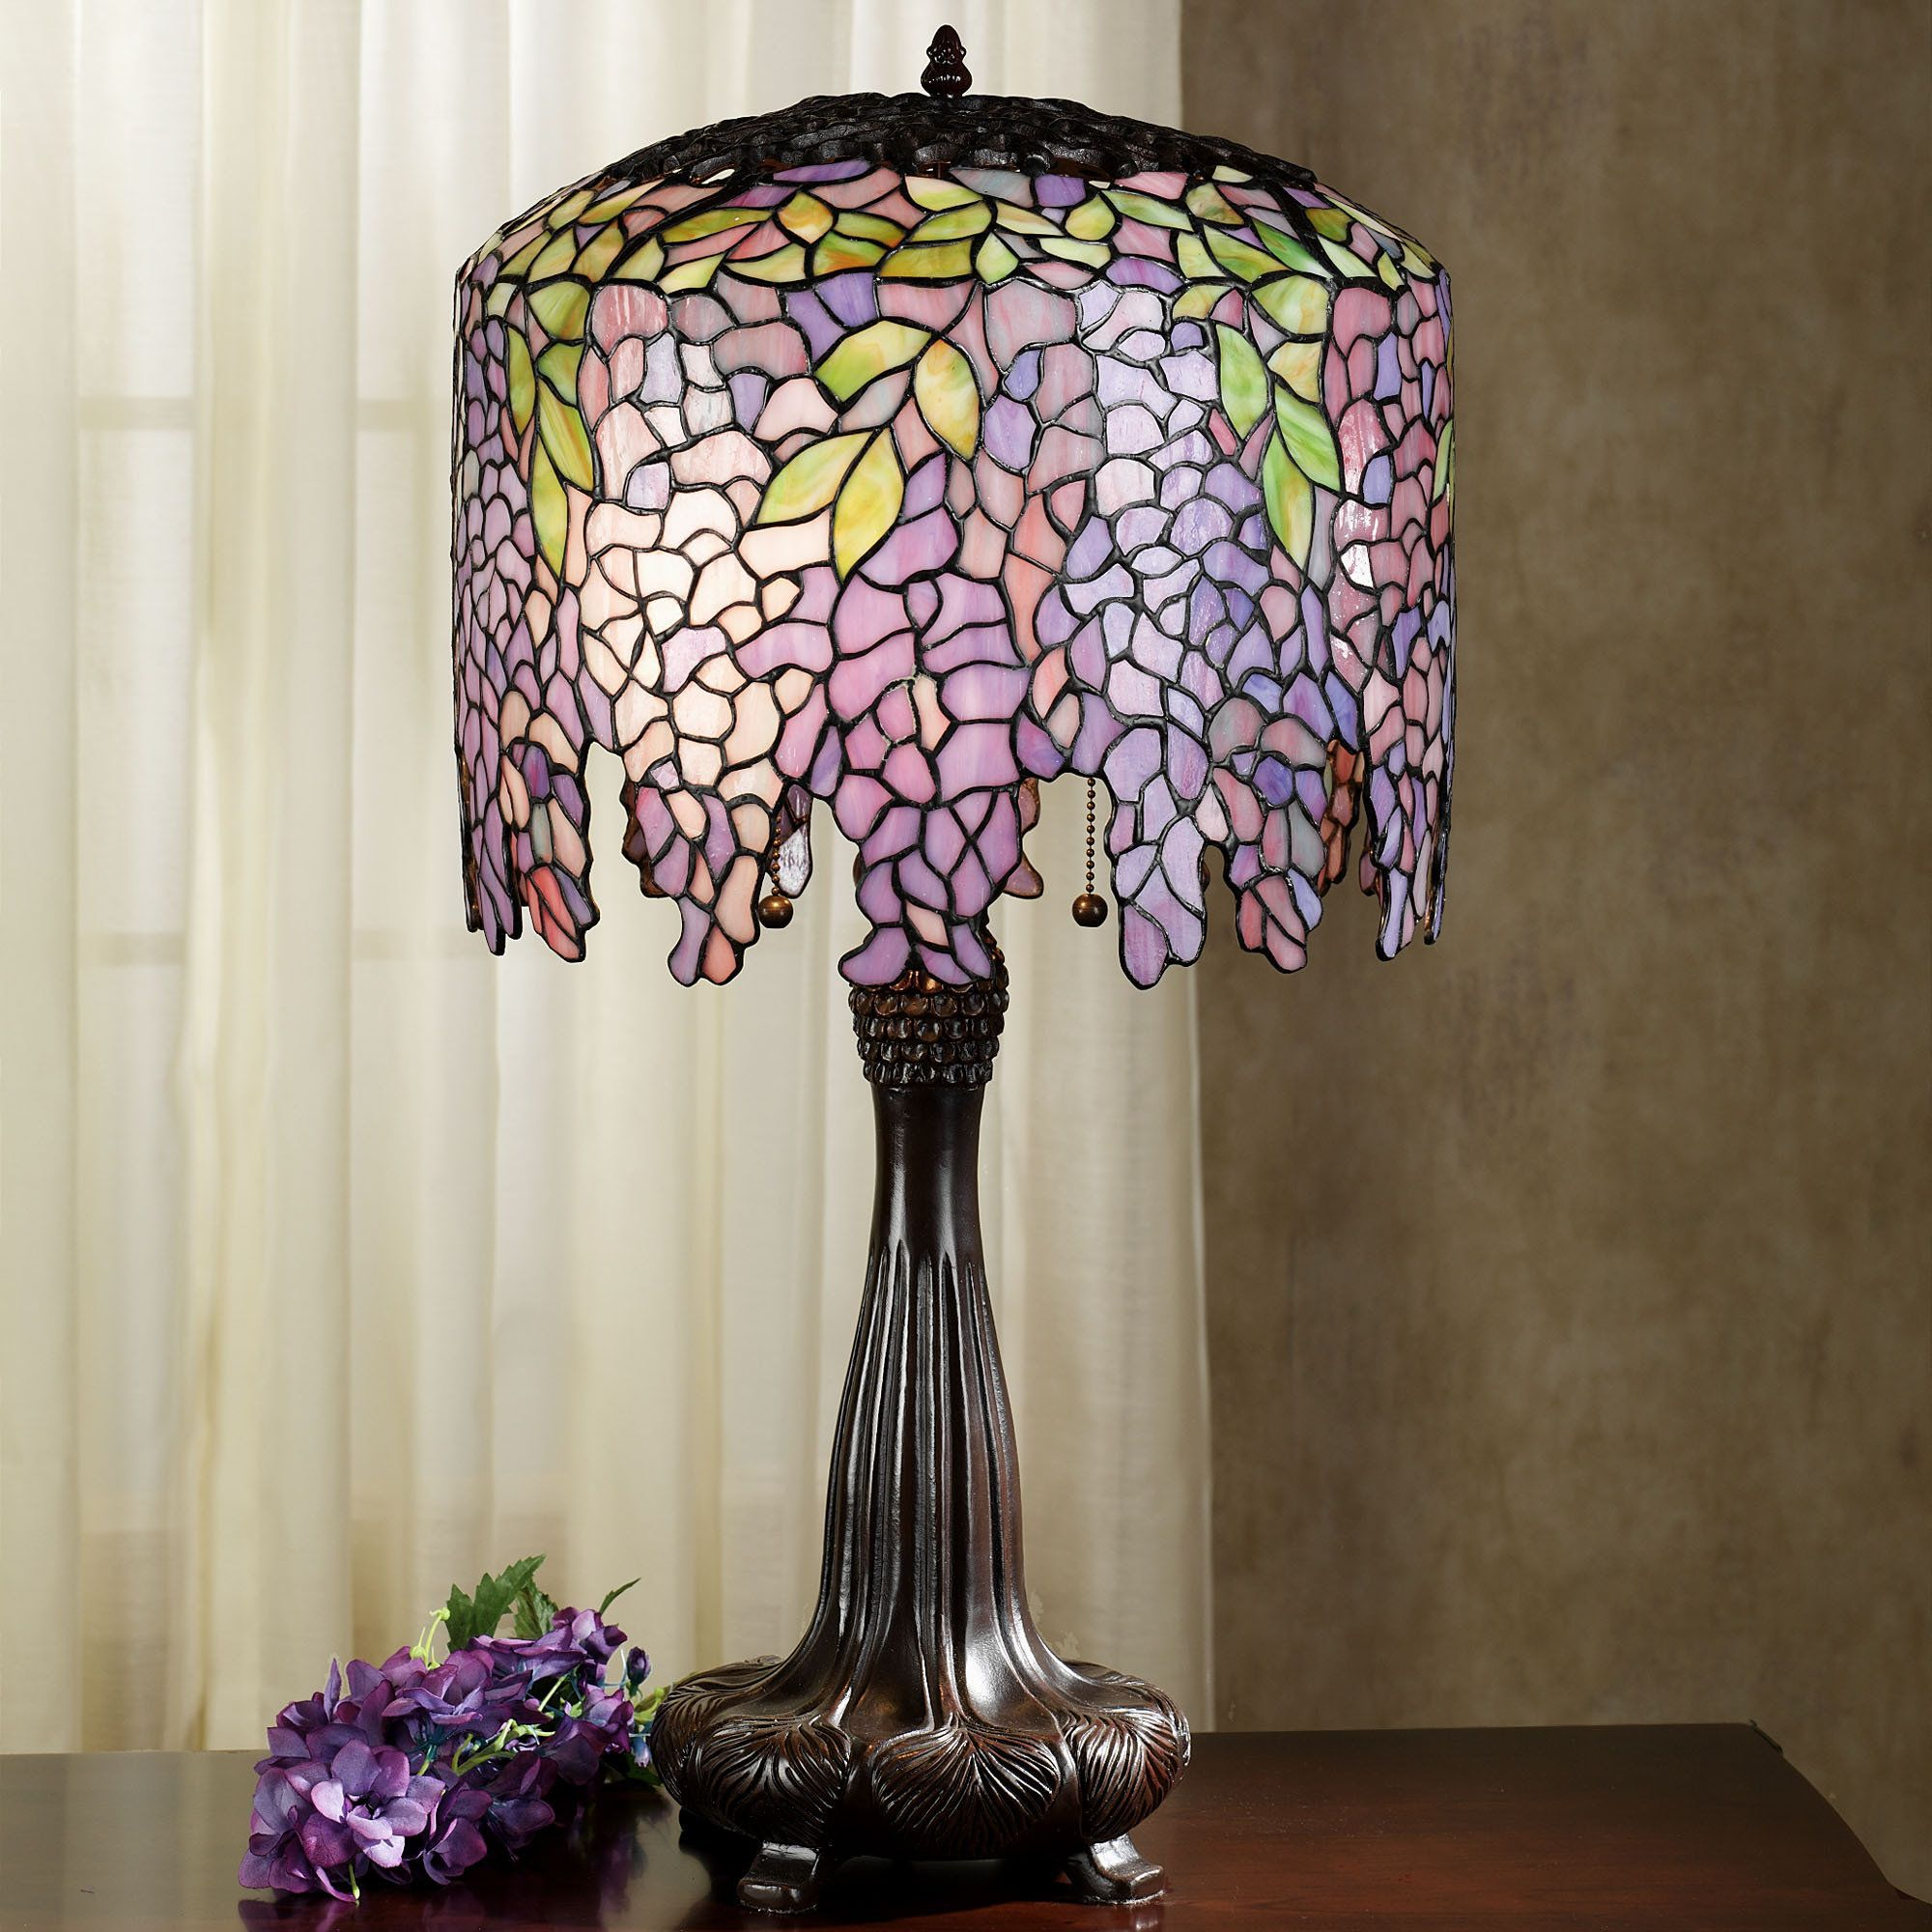 The Handcrafted Wisteria Stained Glass Table Lamp Adds A Unique